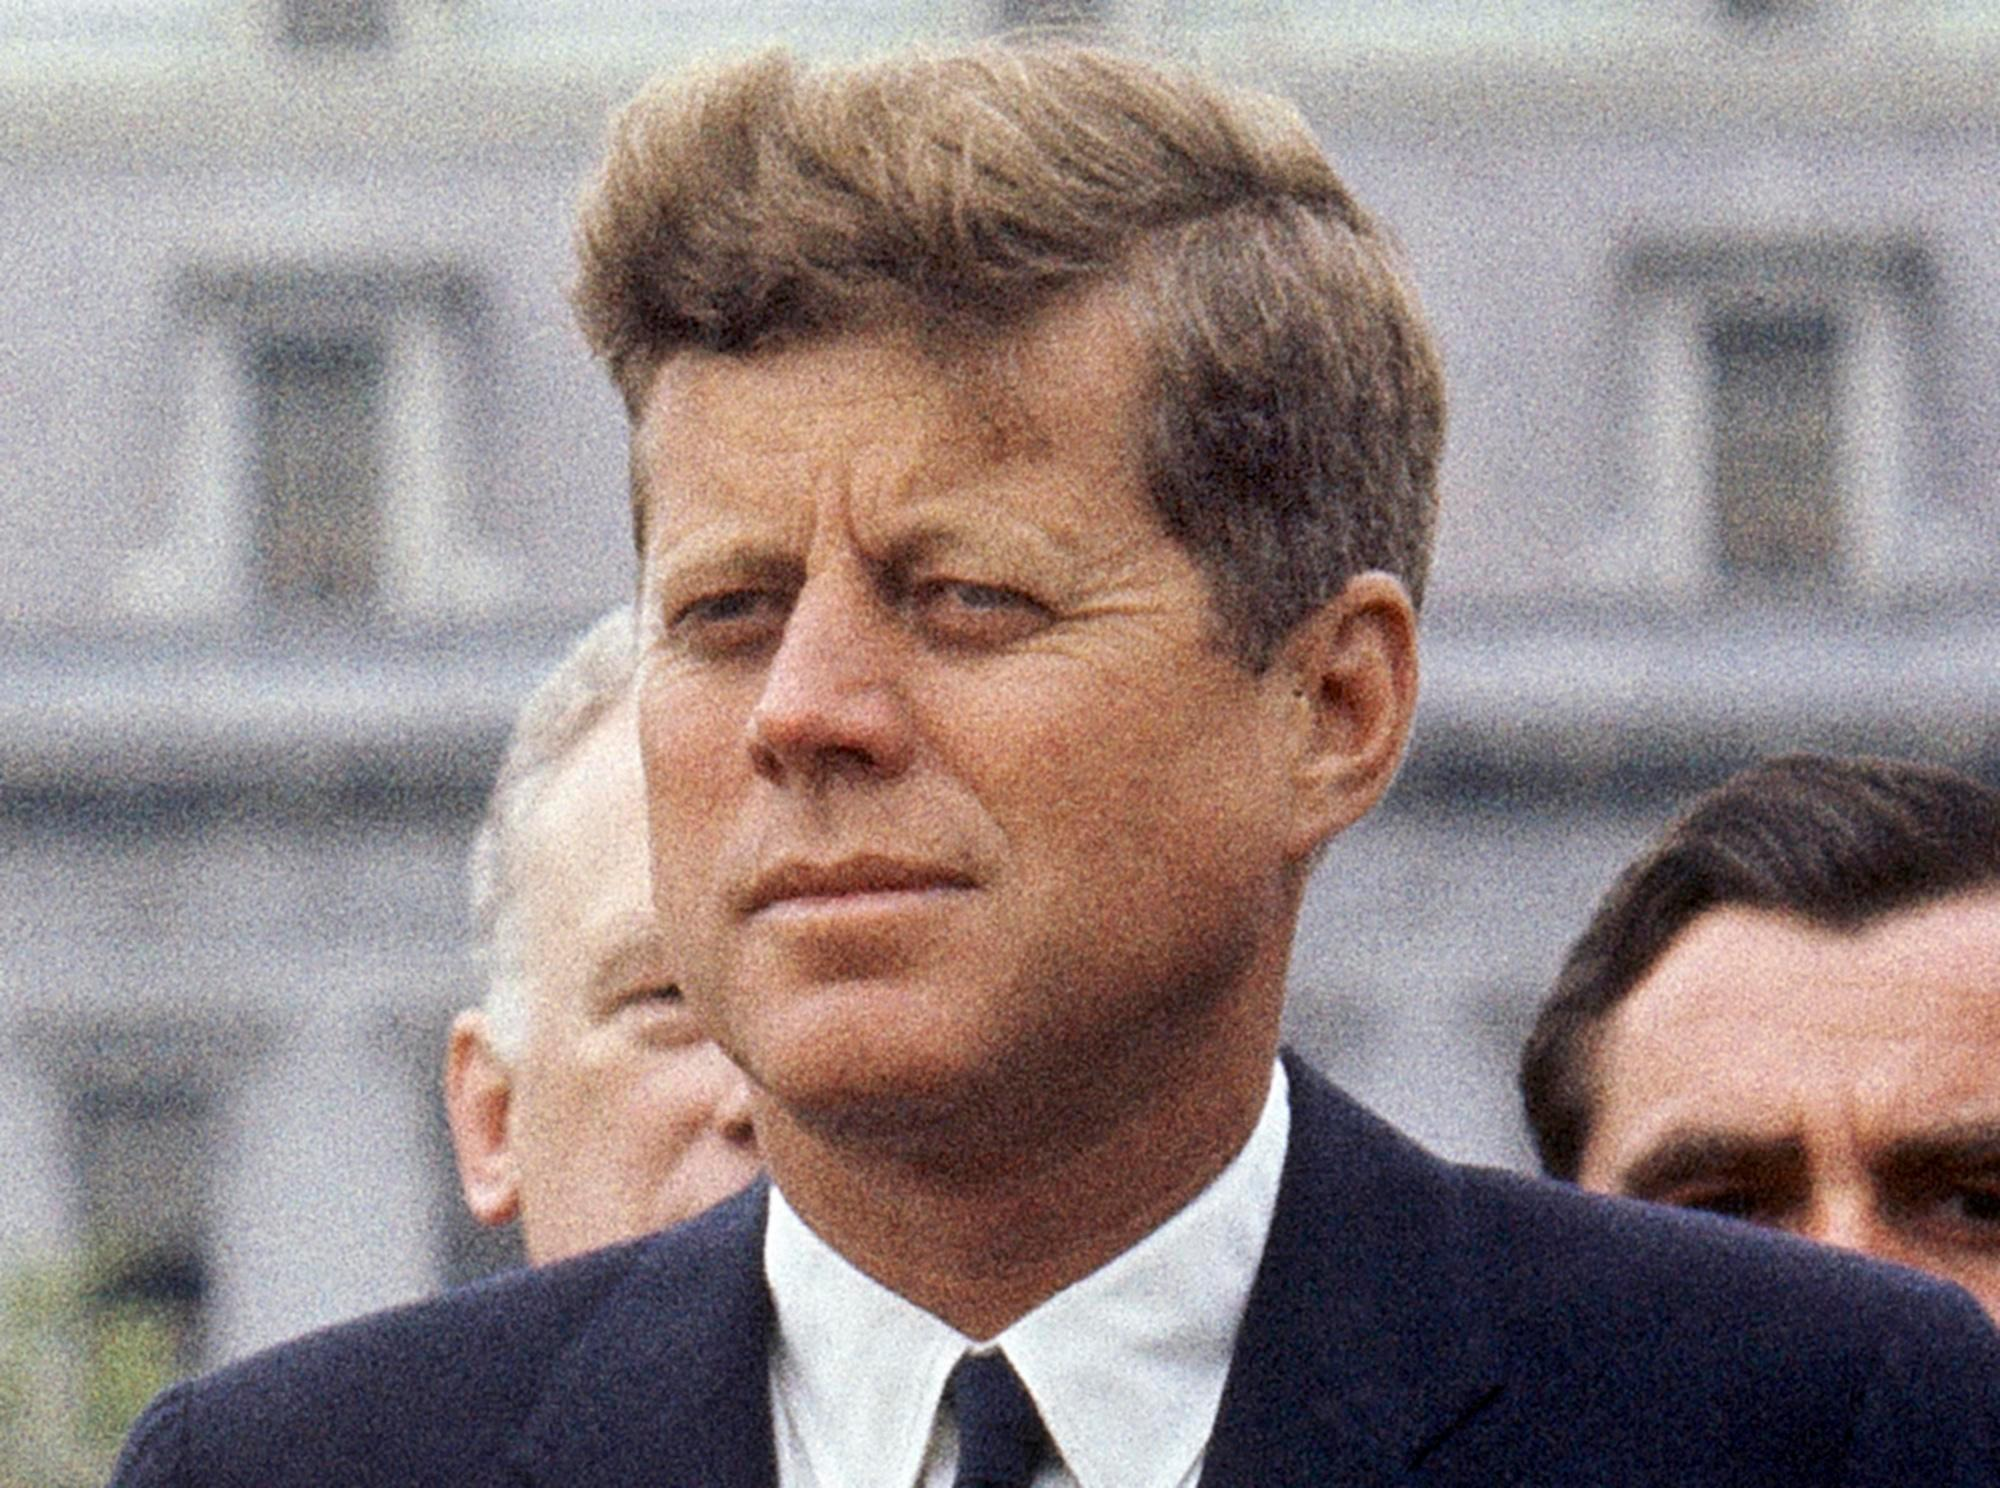 JFK's 'final speech' can finally be heard 55 years after his assassination thanks to amazing tech recreating his voice